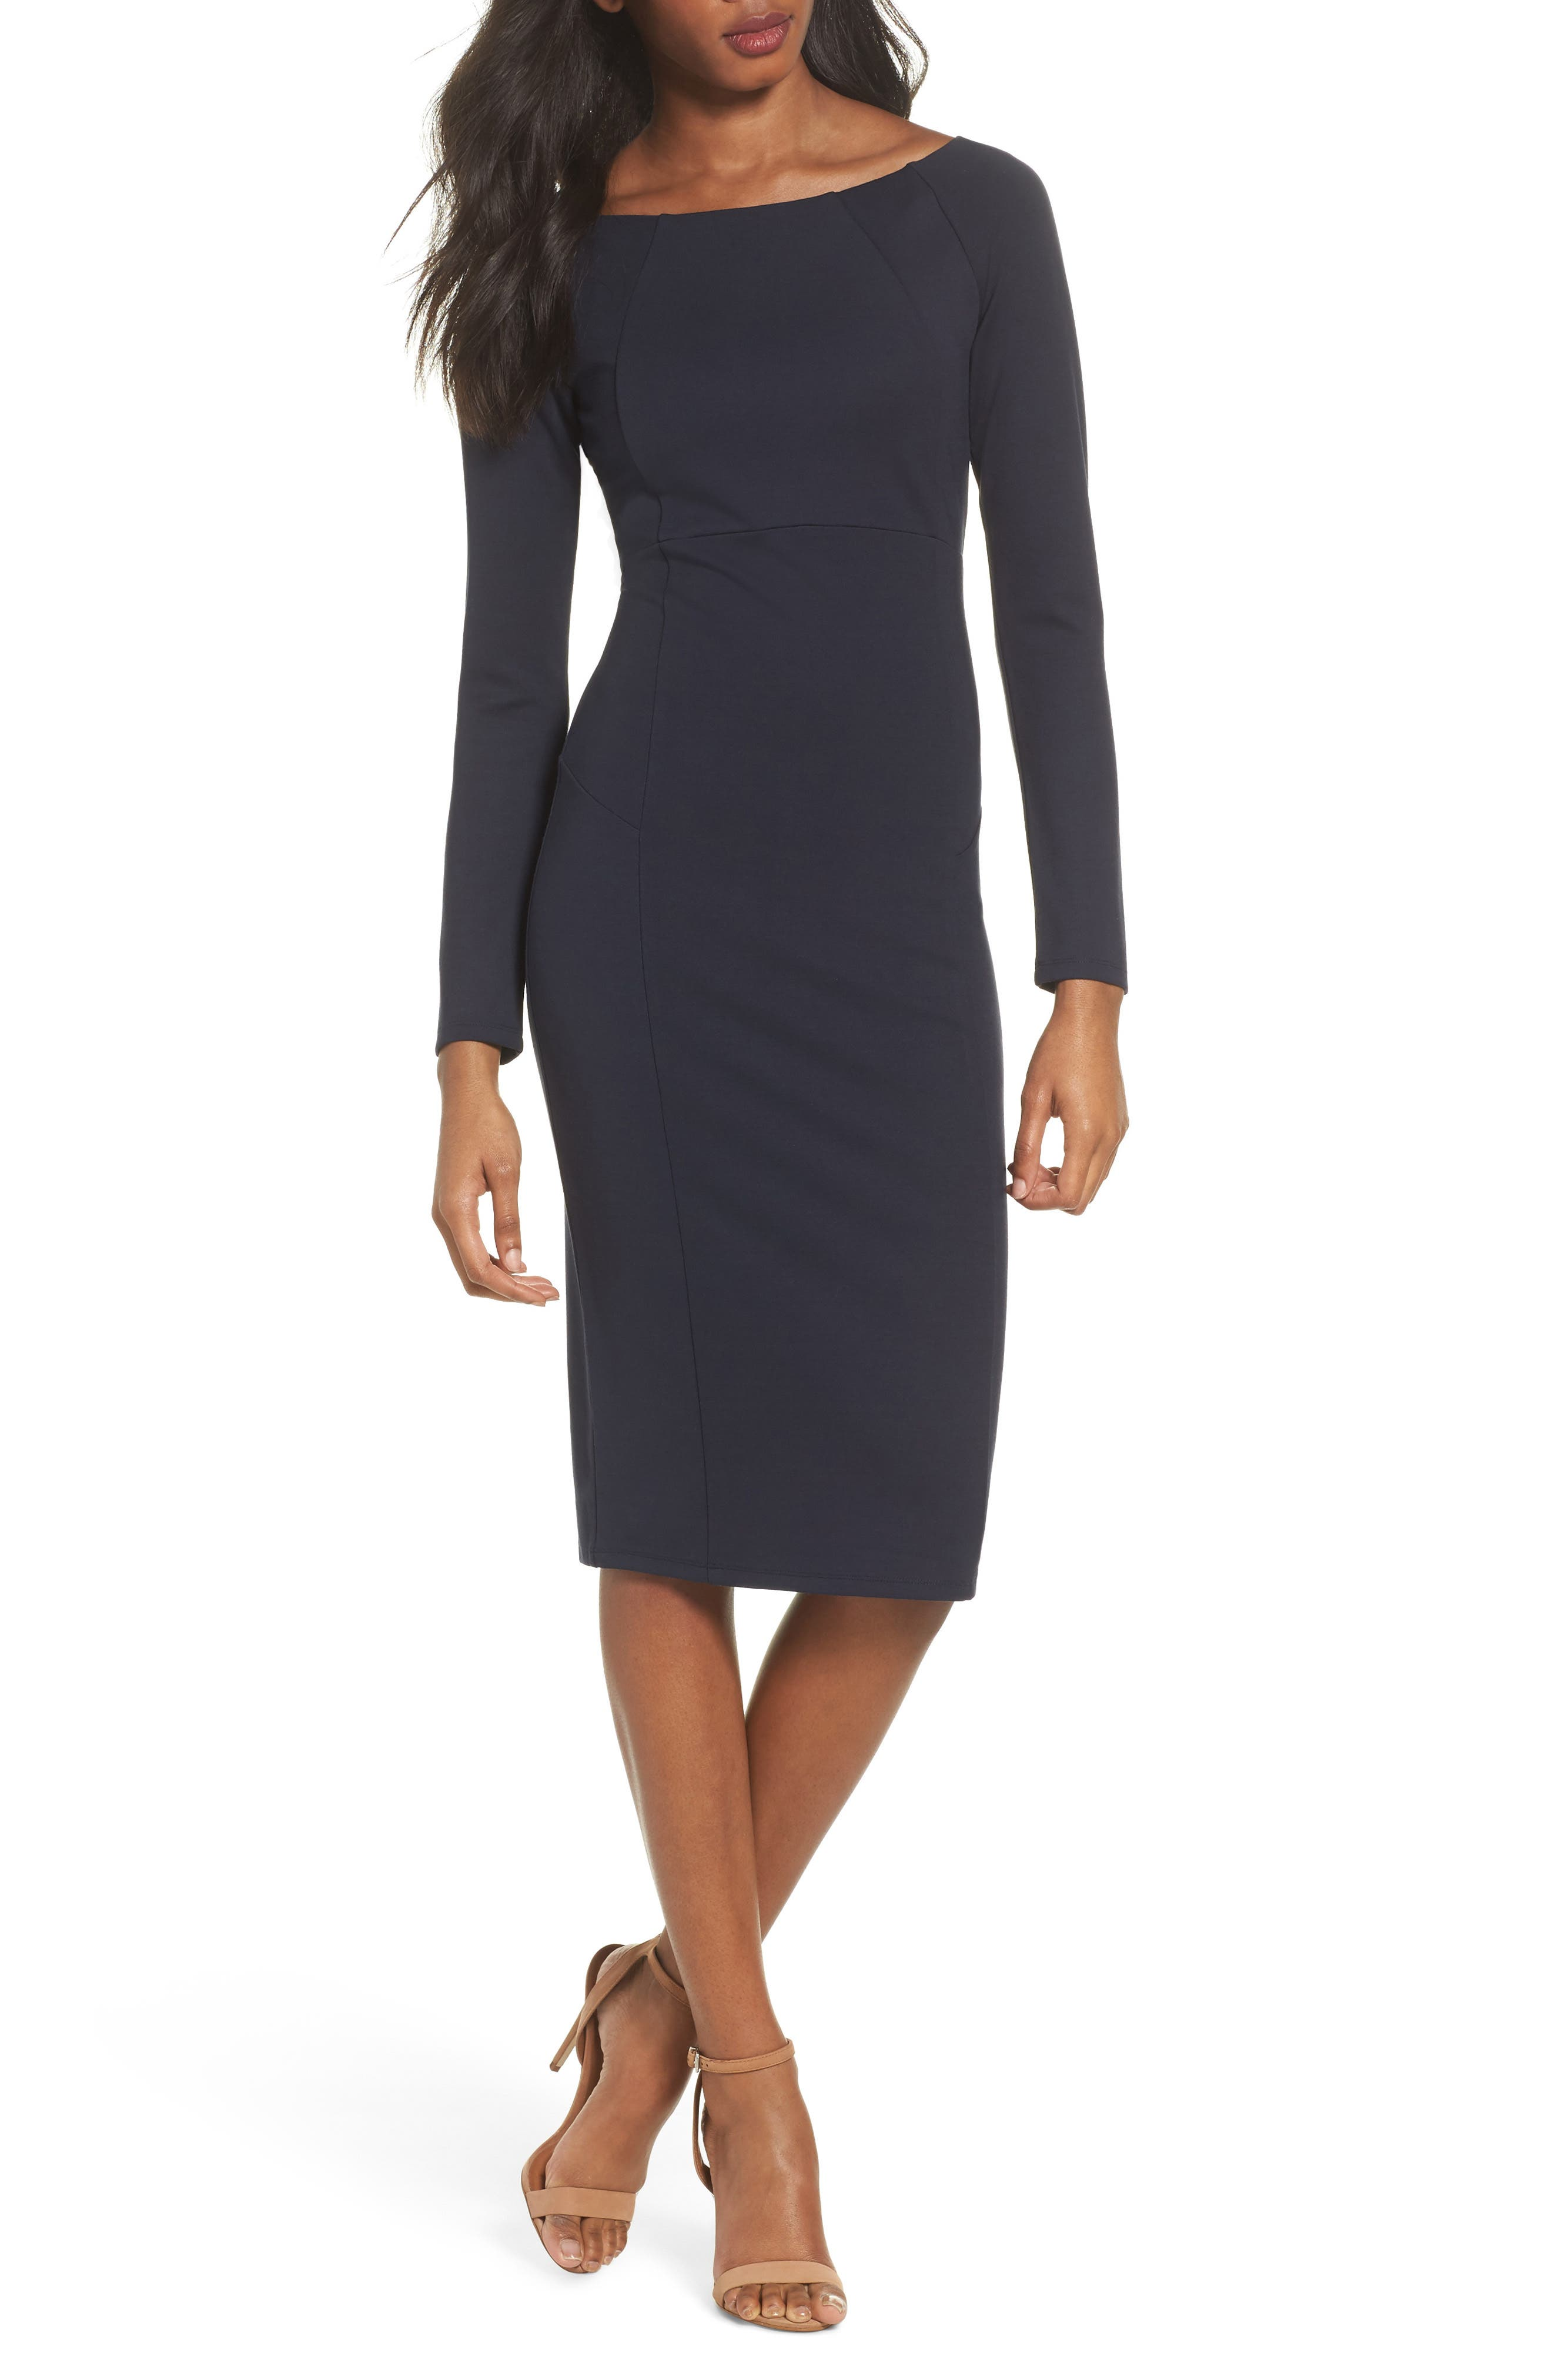 Maile Sheath Dress,                             Main thumbnail 1, color,